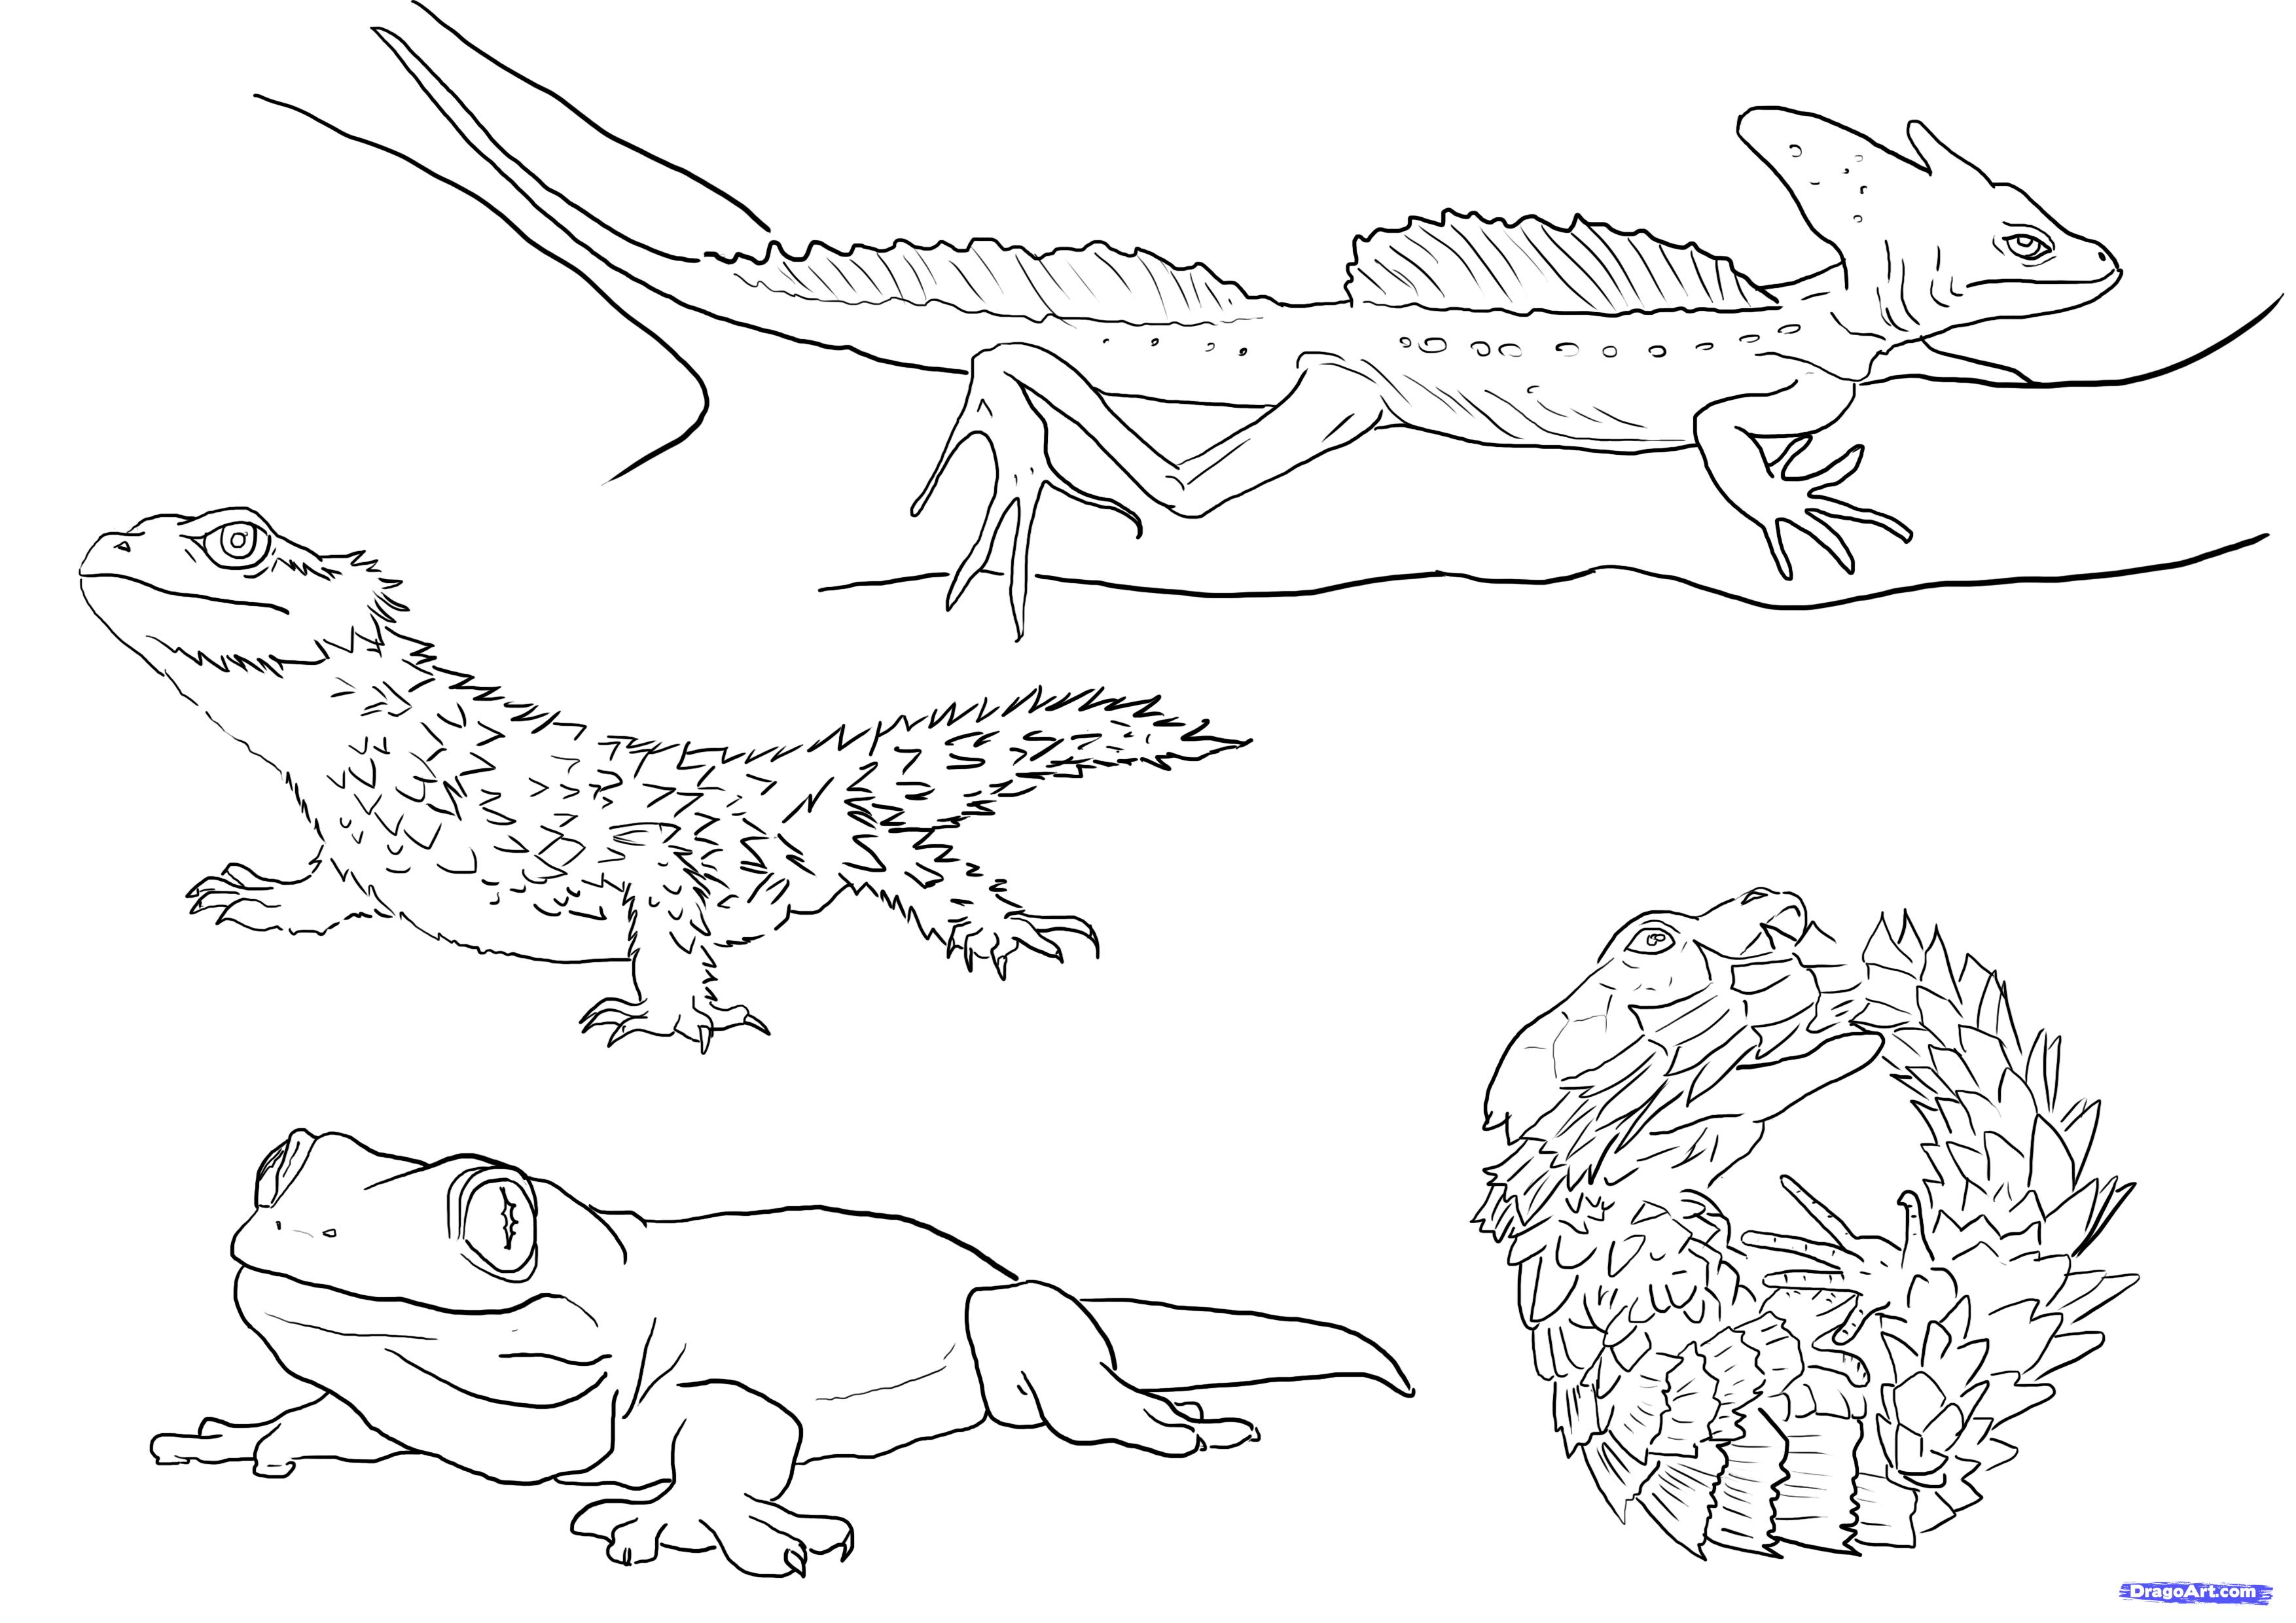 Drawn reptile line drawing To to draw photo#5 Draw